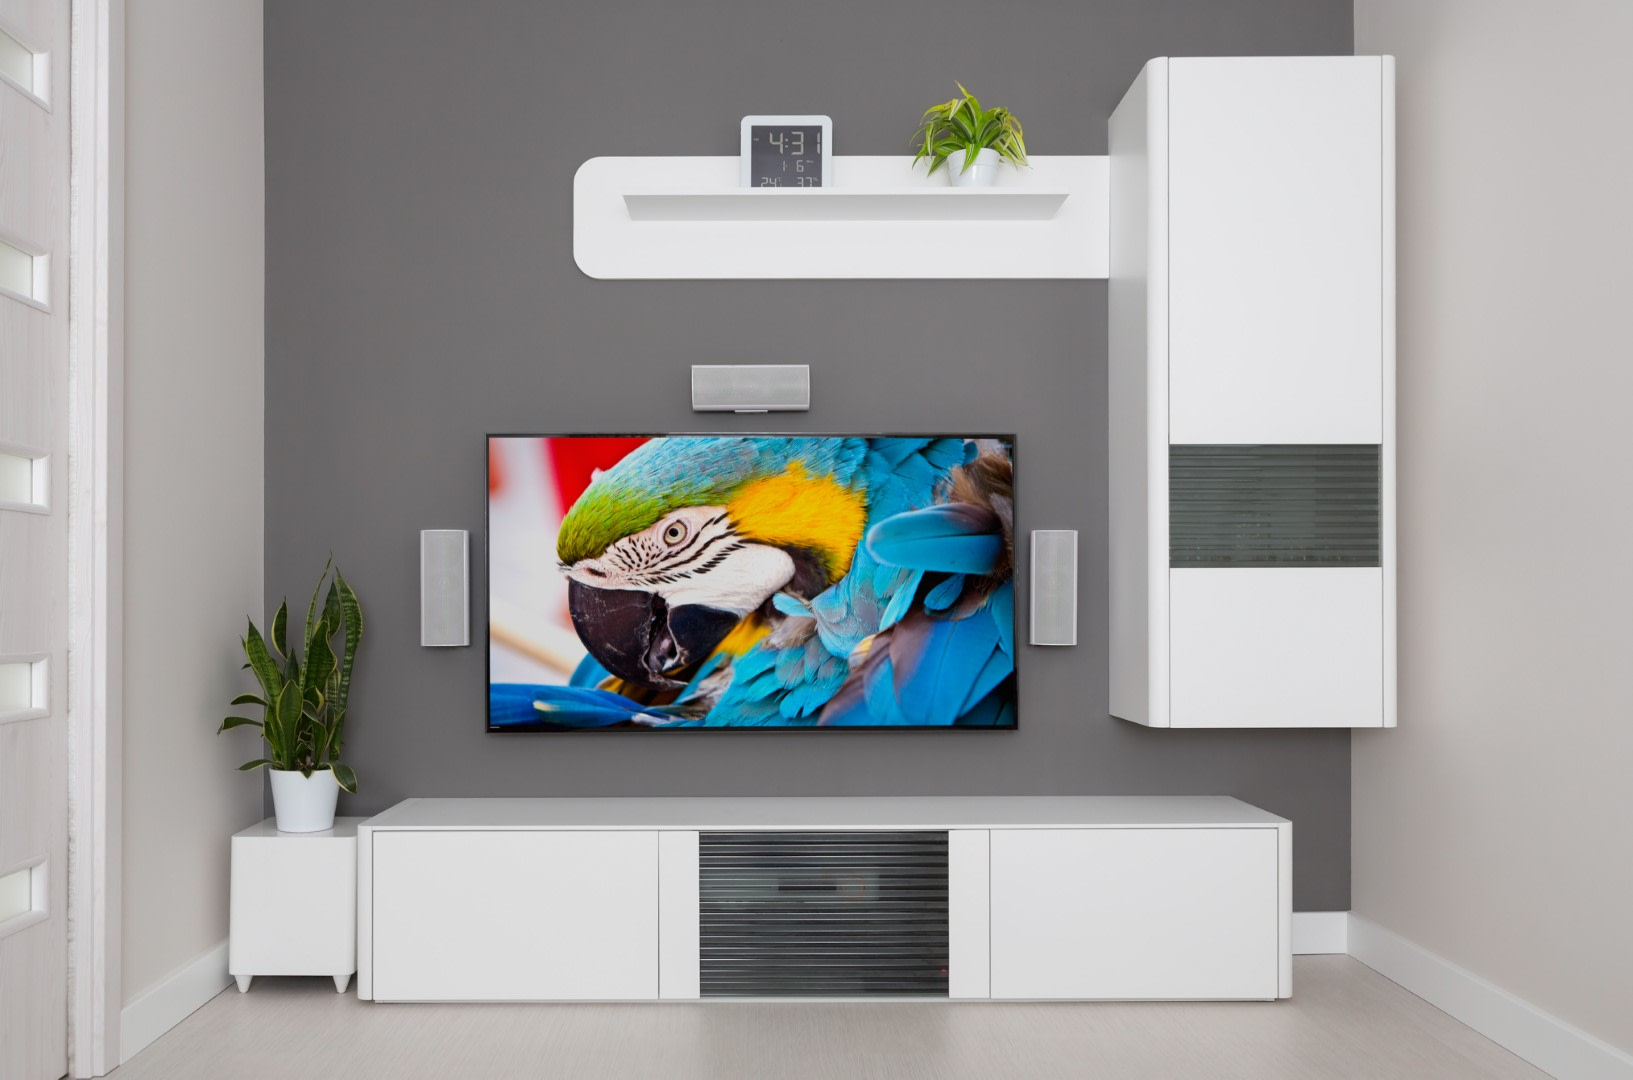 An image related to Big Screen 77-Inch 4K TVs Review